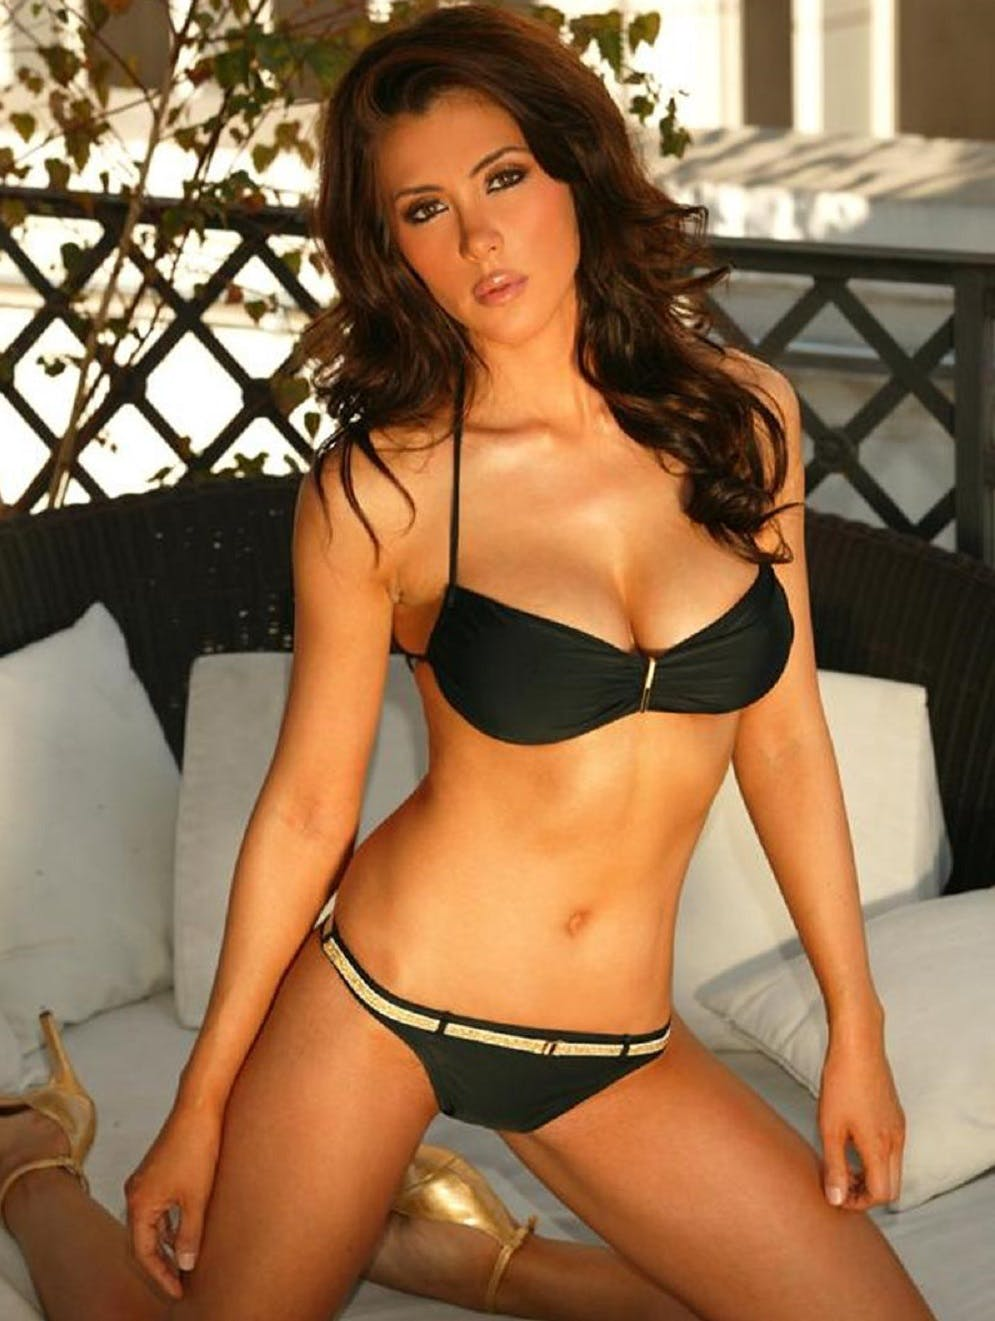 d2d26740b These Are Sexiest Lingerie Models Of All Time